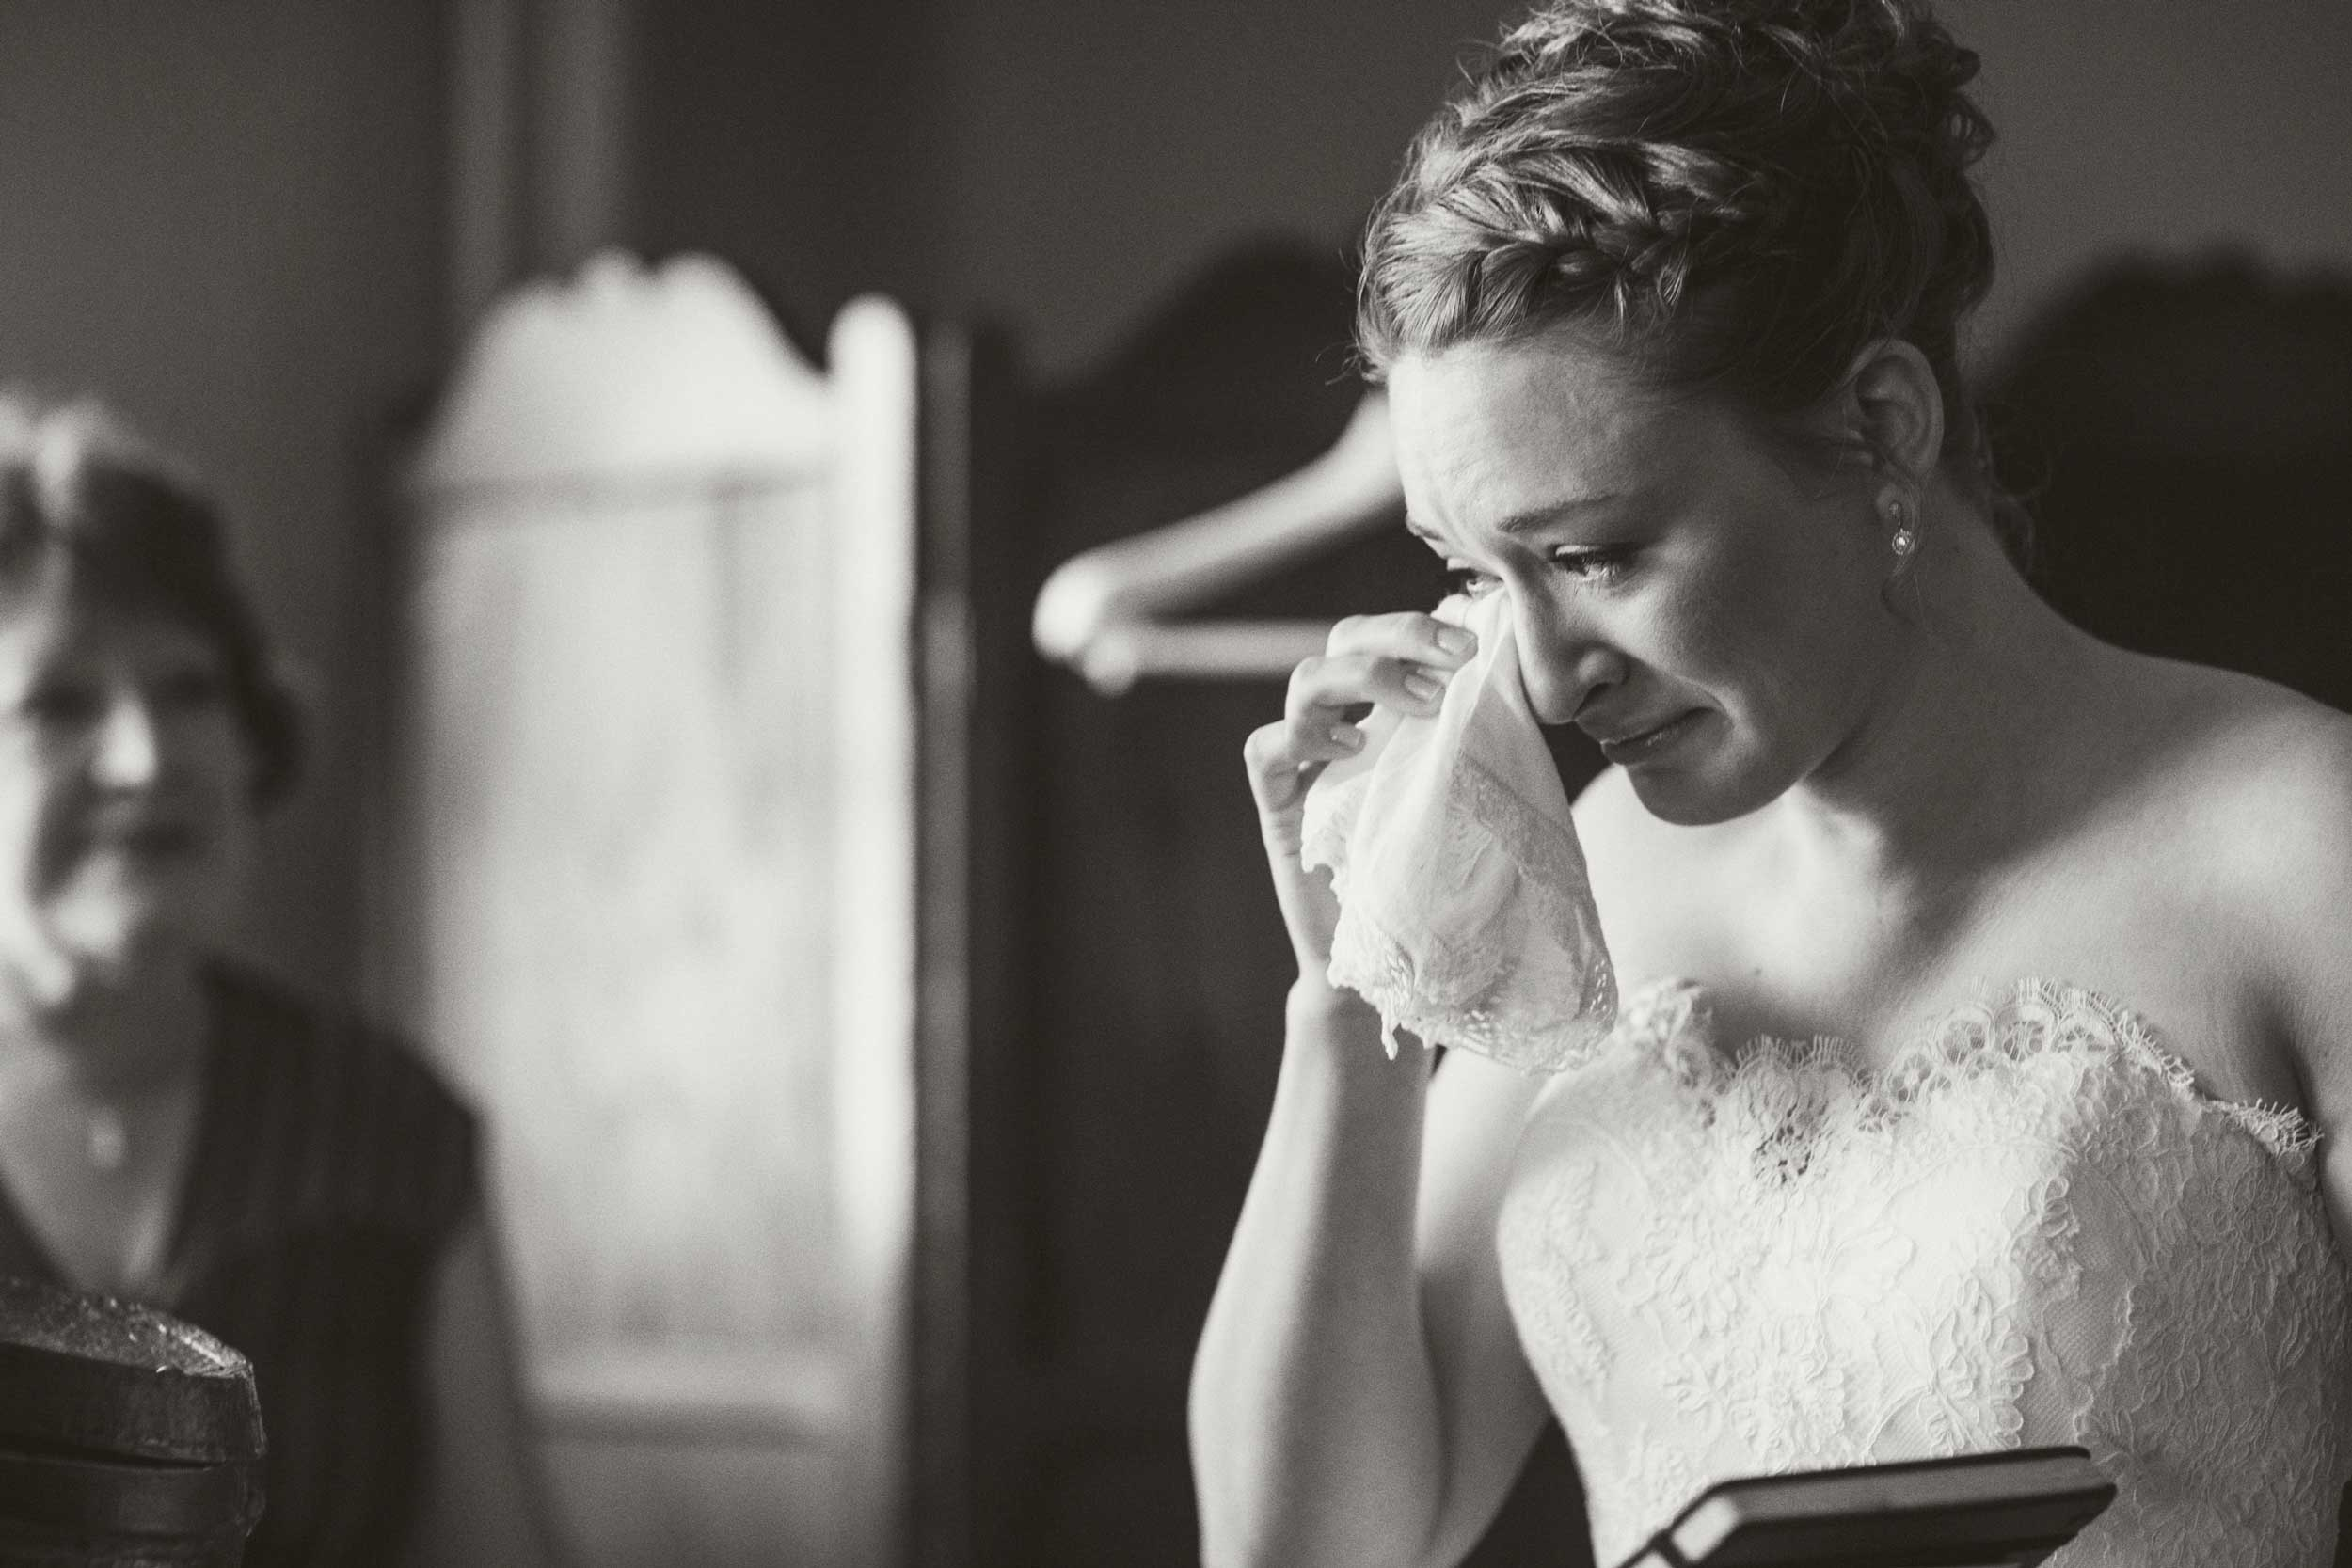 Bride shedding tears after reading the groom's letter to her.